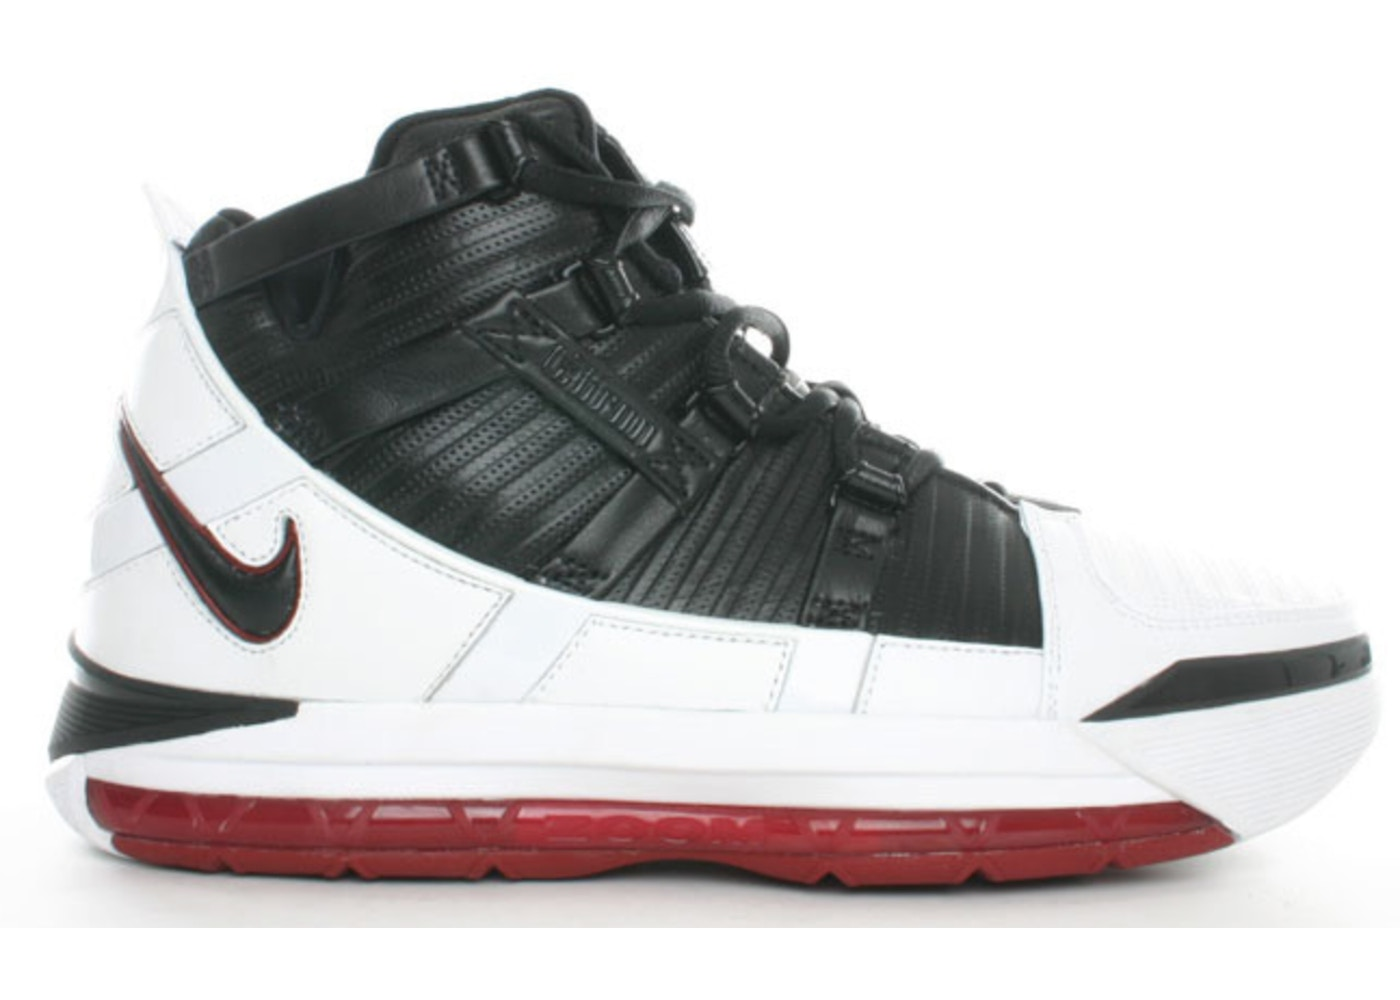 b2556656d0e Nike LeBron Other Shoes - Price Premium